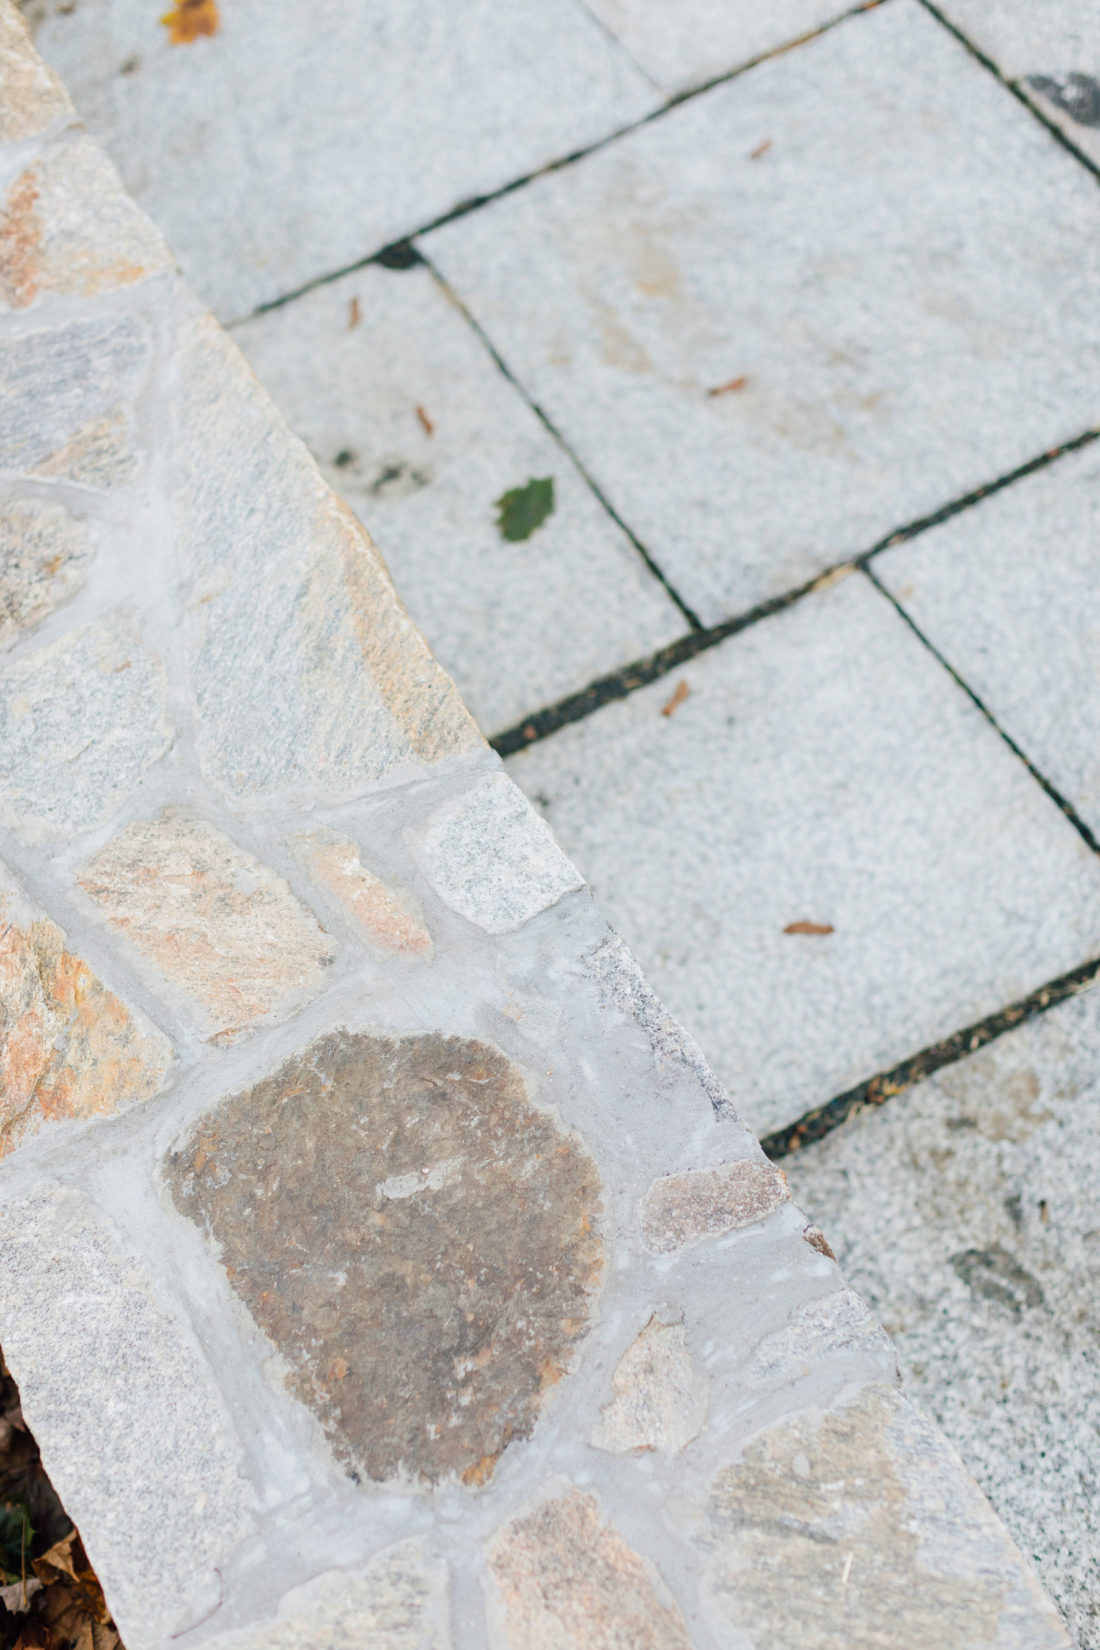 Swenson Granite stone on the patio of Eva Amurri Martino's Connecticut home